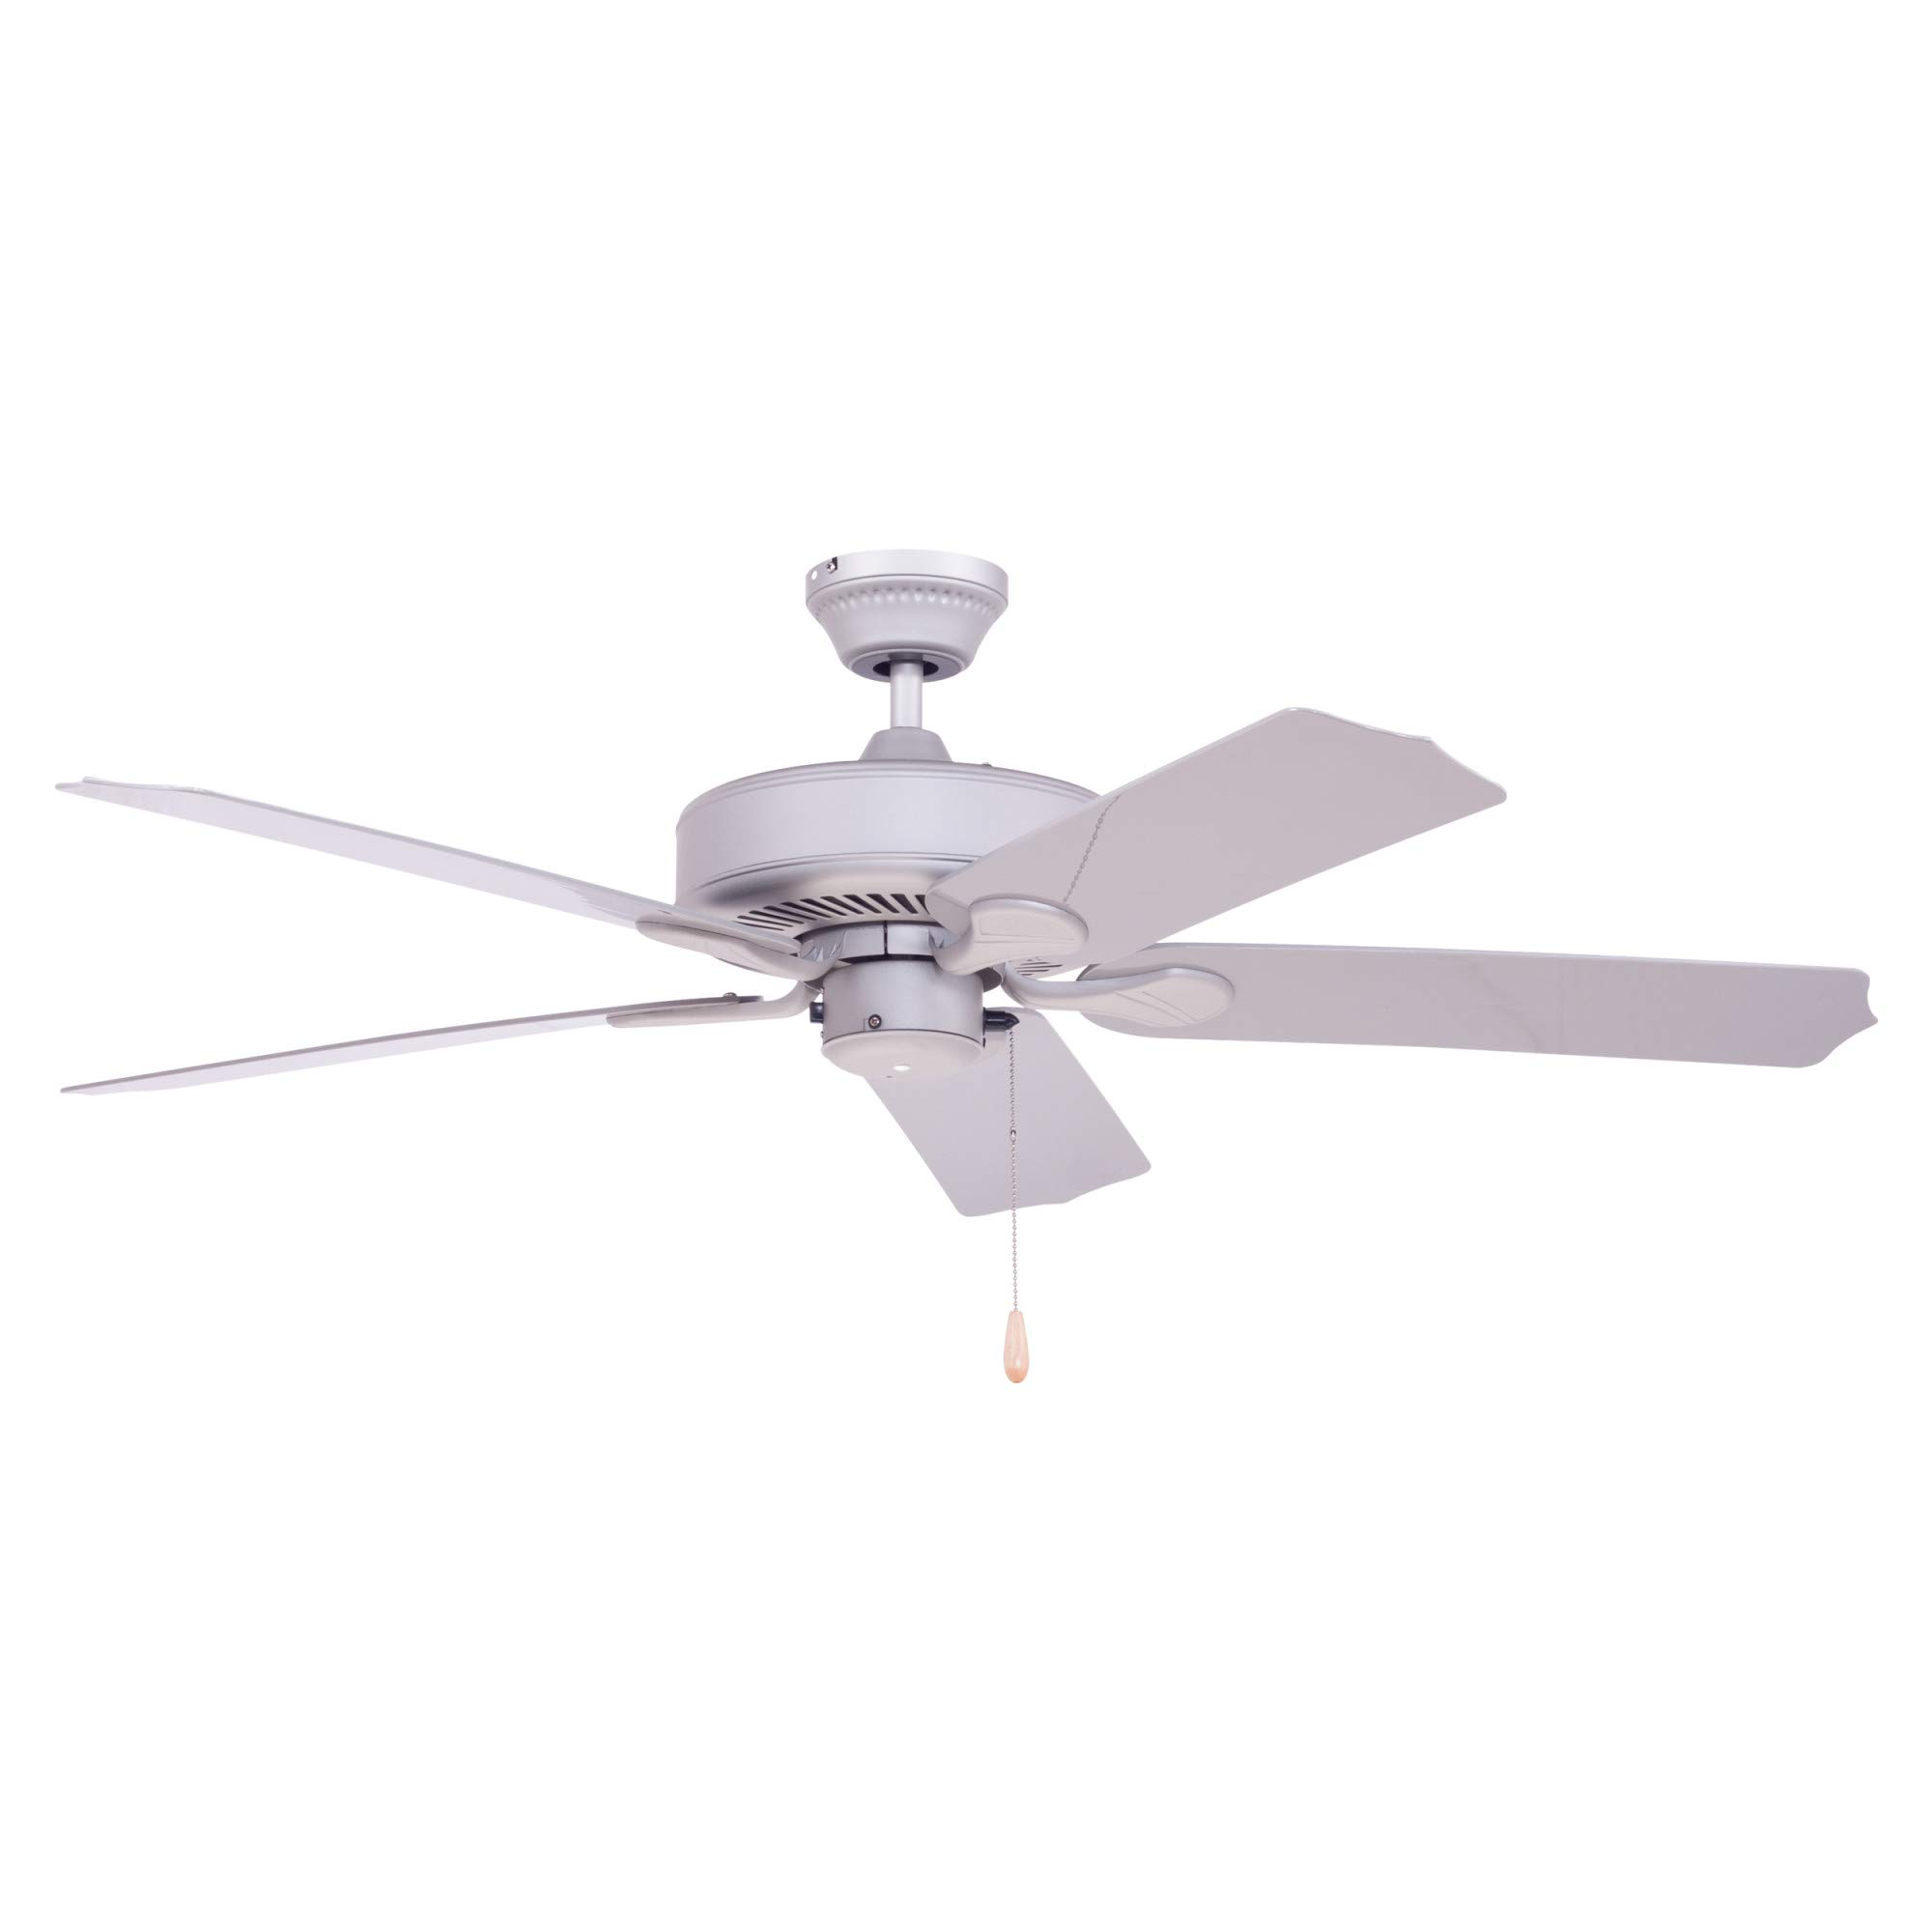 Miseno MFAN-5101BP 52'' Indoor/Outdoor Ceiling Fan - Includes 5 ABS Blades